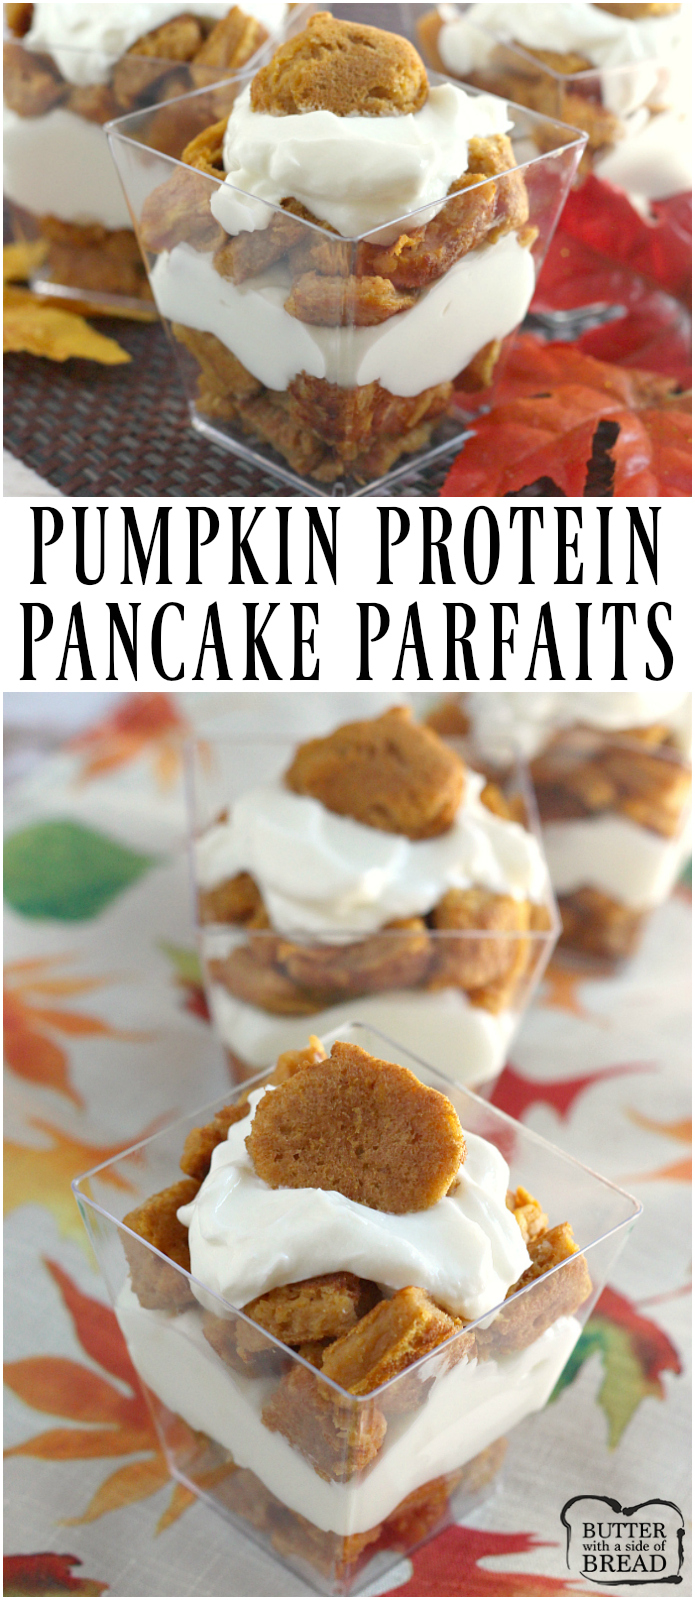 Pumpkin Protein Pancake Parfaits are a fun way to pack a lot of protein and deliciousness into the perfect fall breakfast!